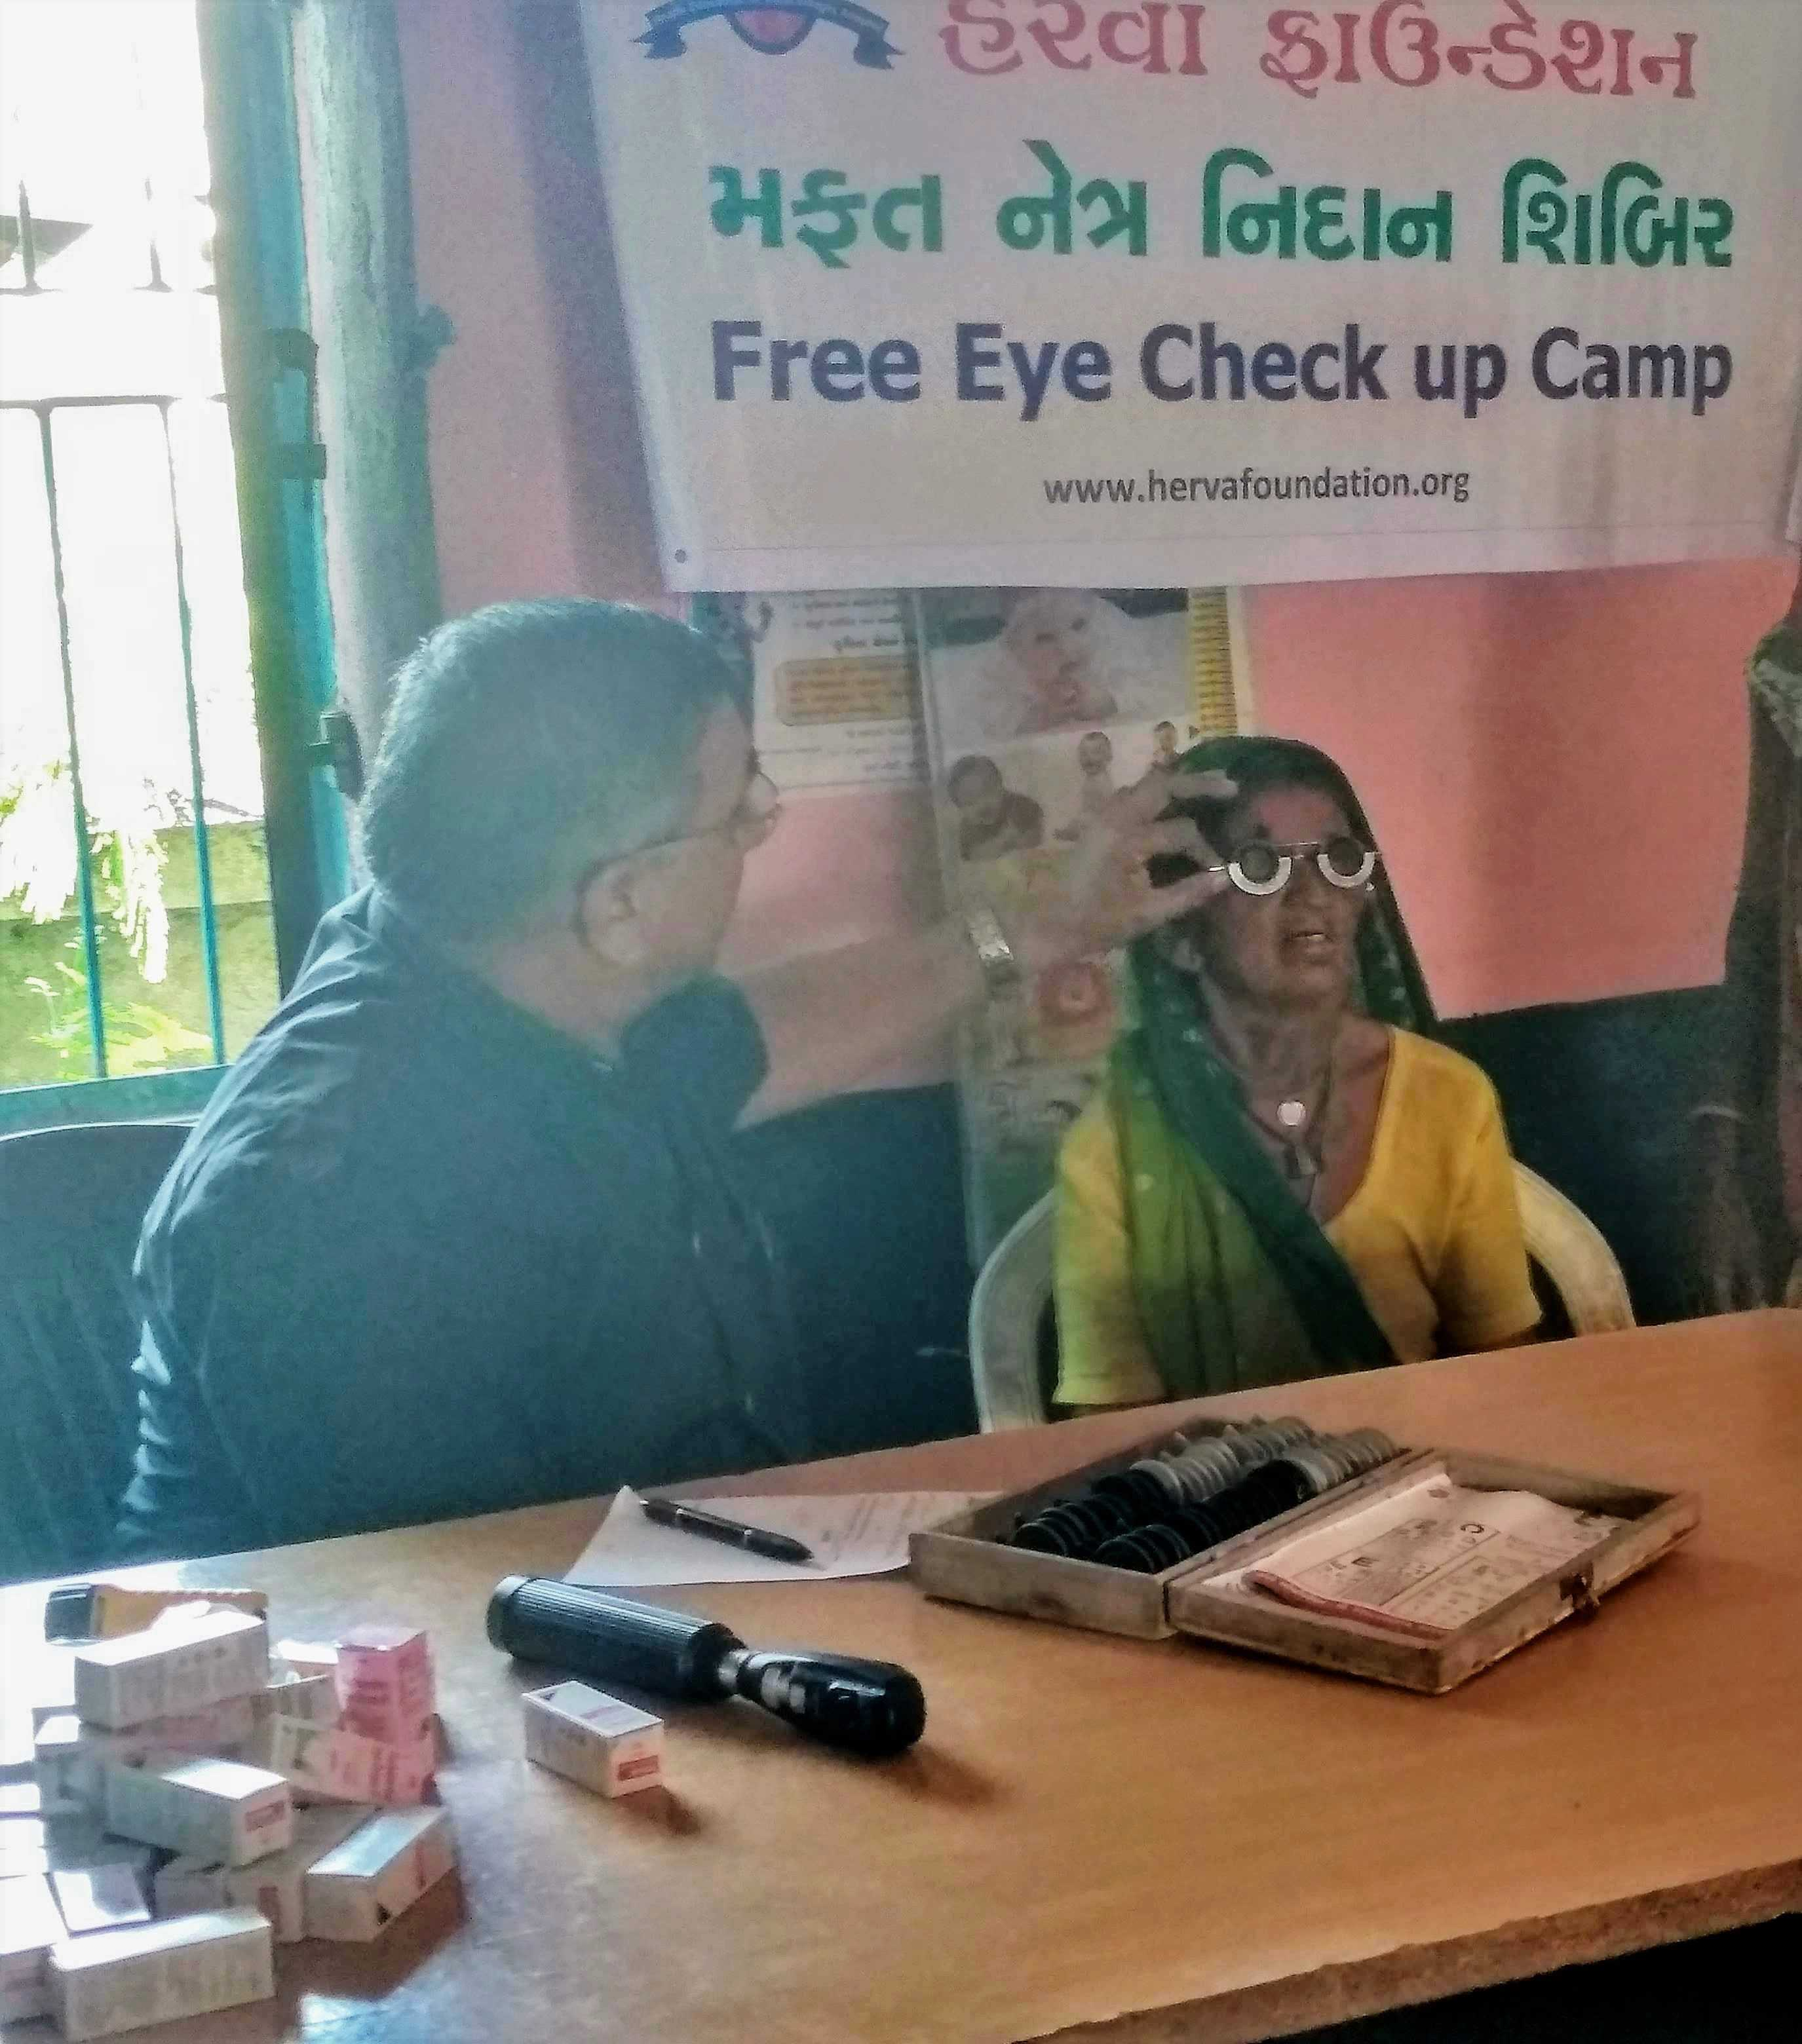 JALAMPUR VILLAGE - EYE CAMP 15-10-19 We had most successful free Eye check-up and spectacles distribution camp at village Jalampura dist. Viramgam, Gujarat. The Total population of village is 1600 out this 112 village people attended the eye check up camp of which male 45 and female 67 that includes 39 senior citizens (male 14. female 25) 6 of them has cataract so advice for surgery and will FACILITATE THEM FOR THE OPERATION AT Viramgum Lion club. The venue was the Anganwadi building since the exams were held in the school building .